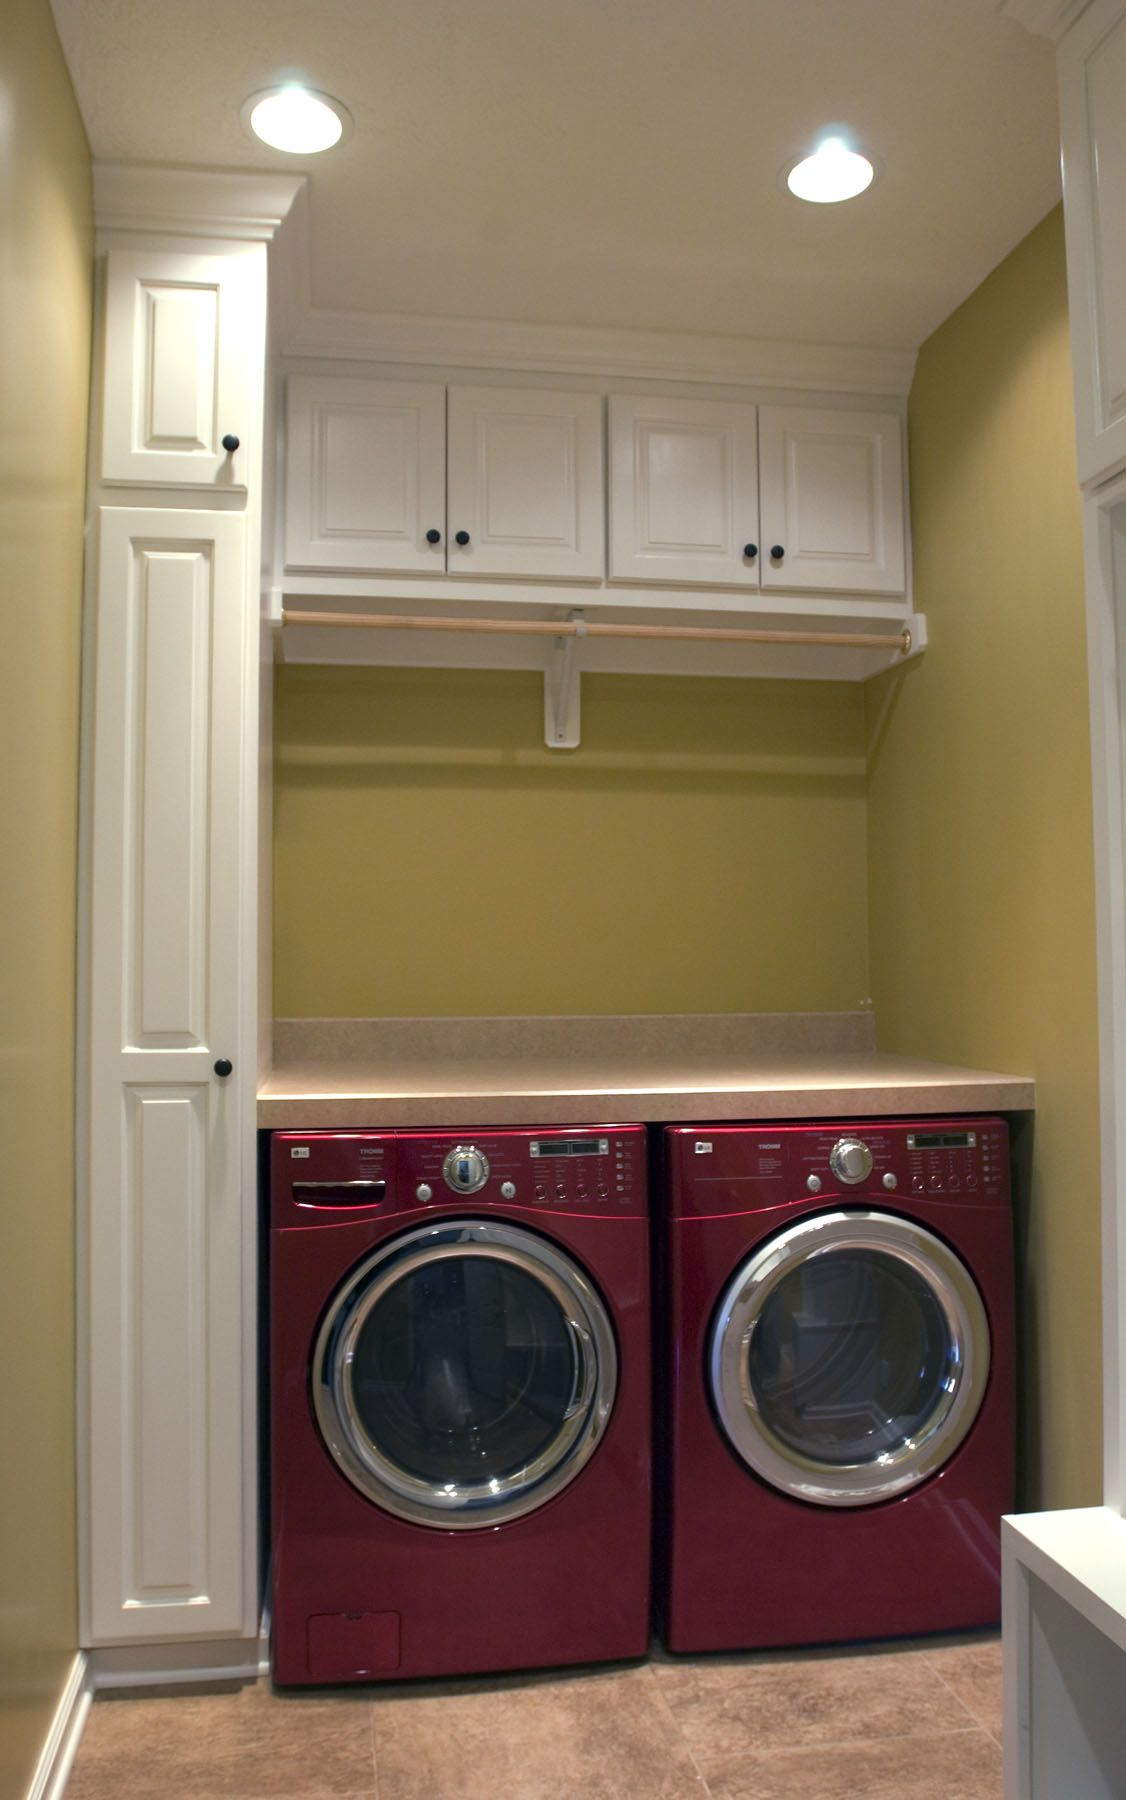 Small Laundry Room Ideas Perfect Little Closet For The Broom And